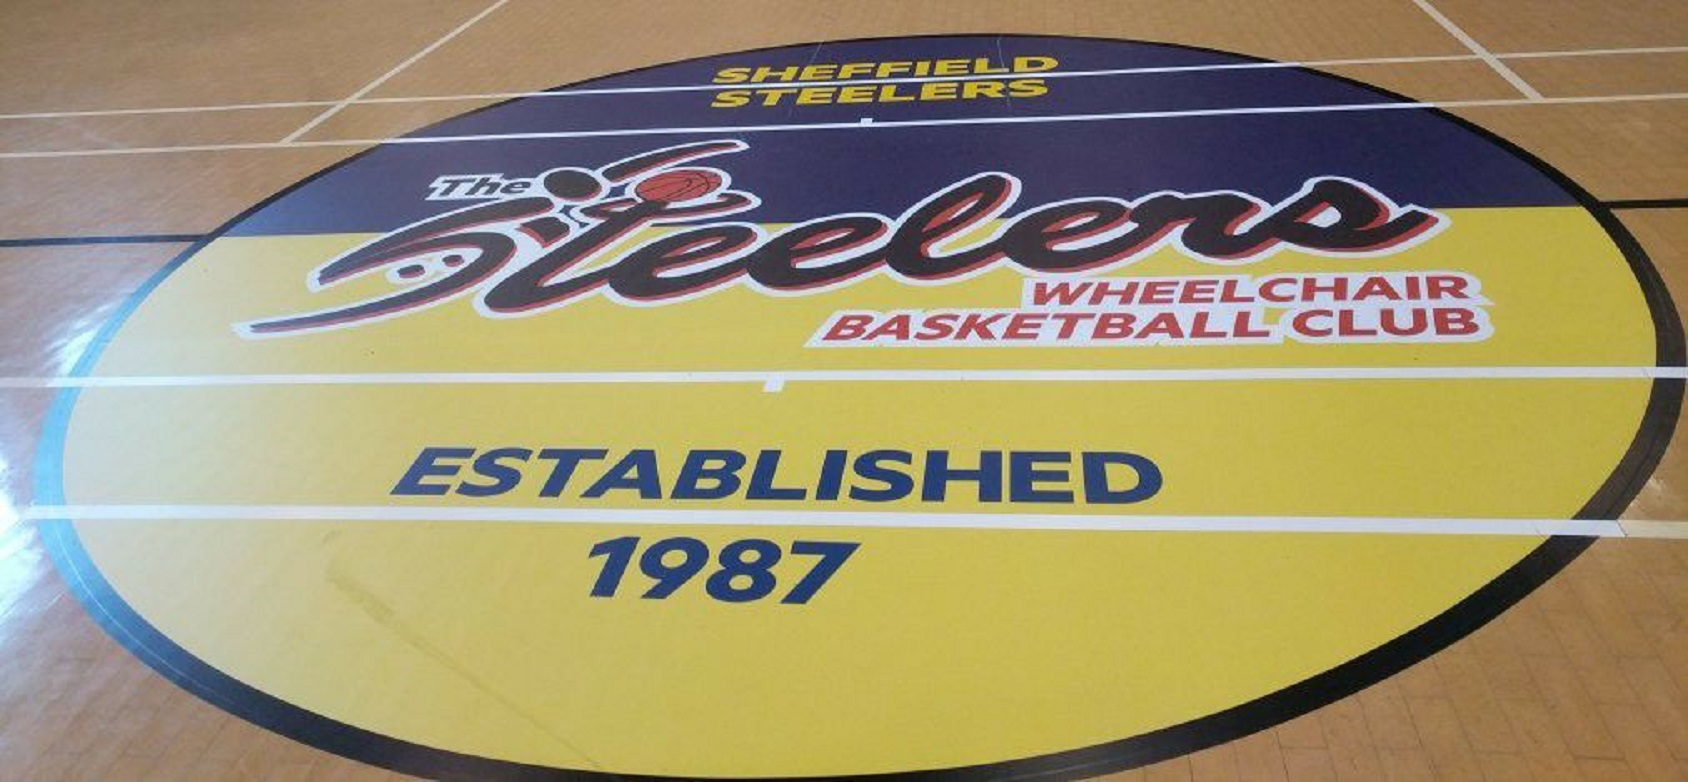 Steelers Branding On Court